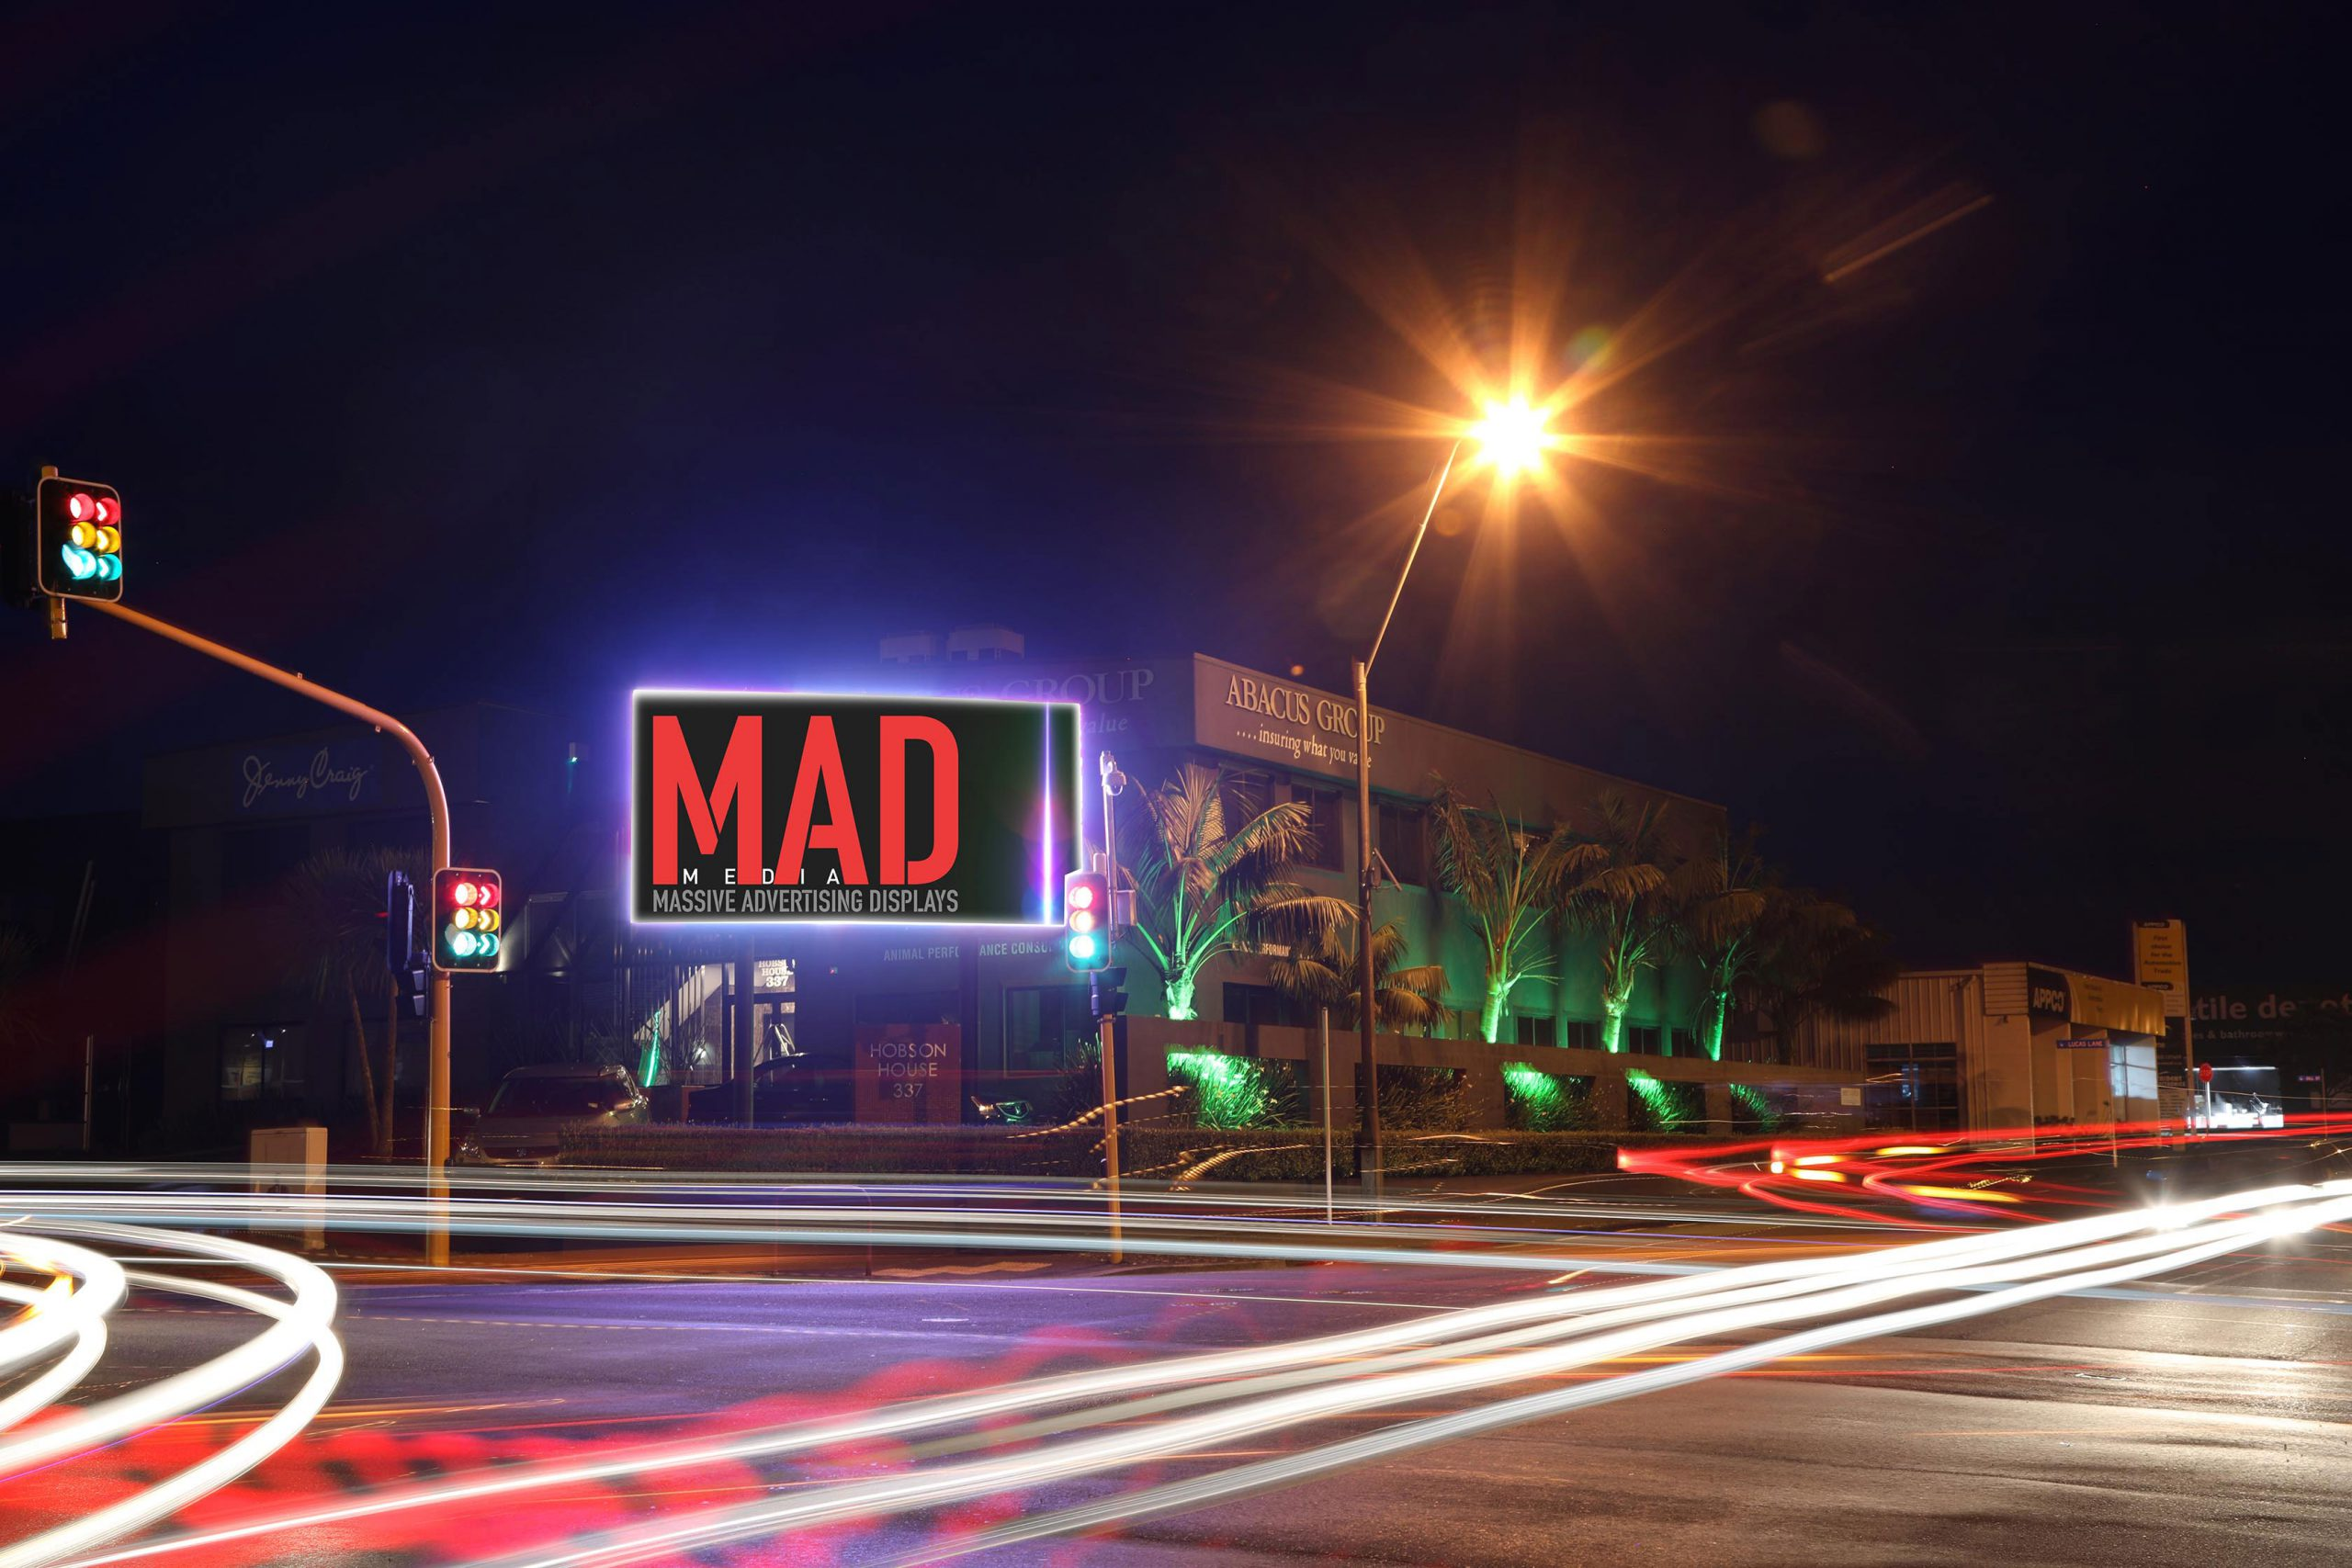 MAD's very popular Hobson Board glowing admits the traffic lights.